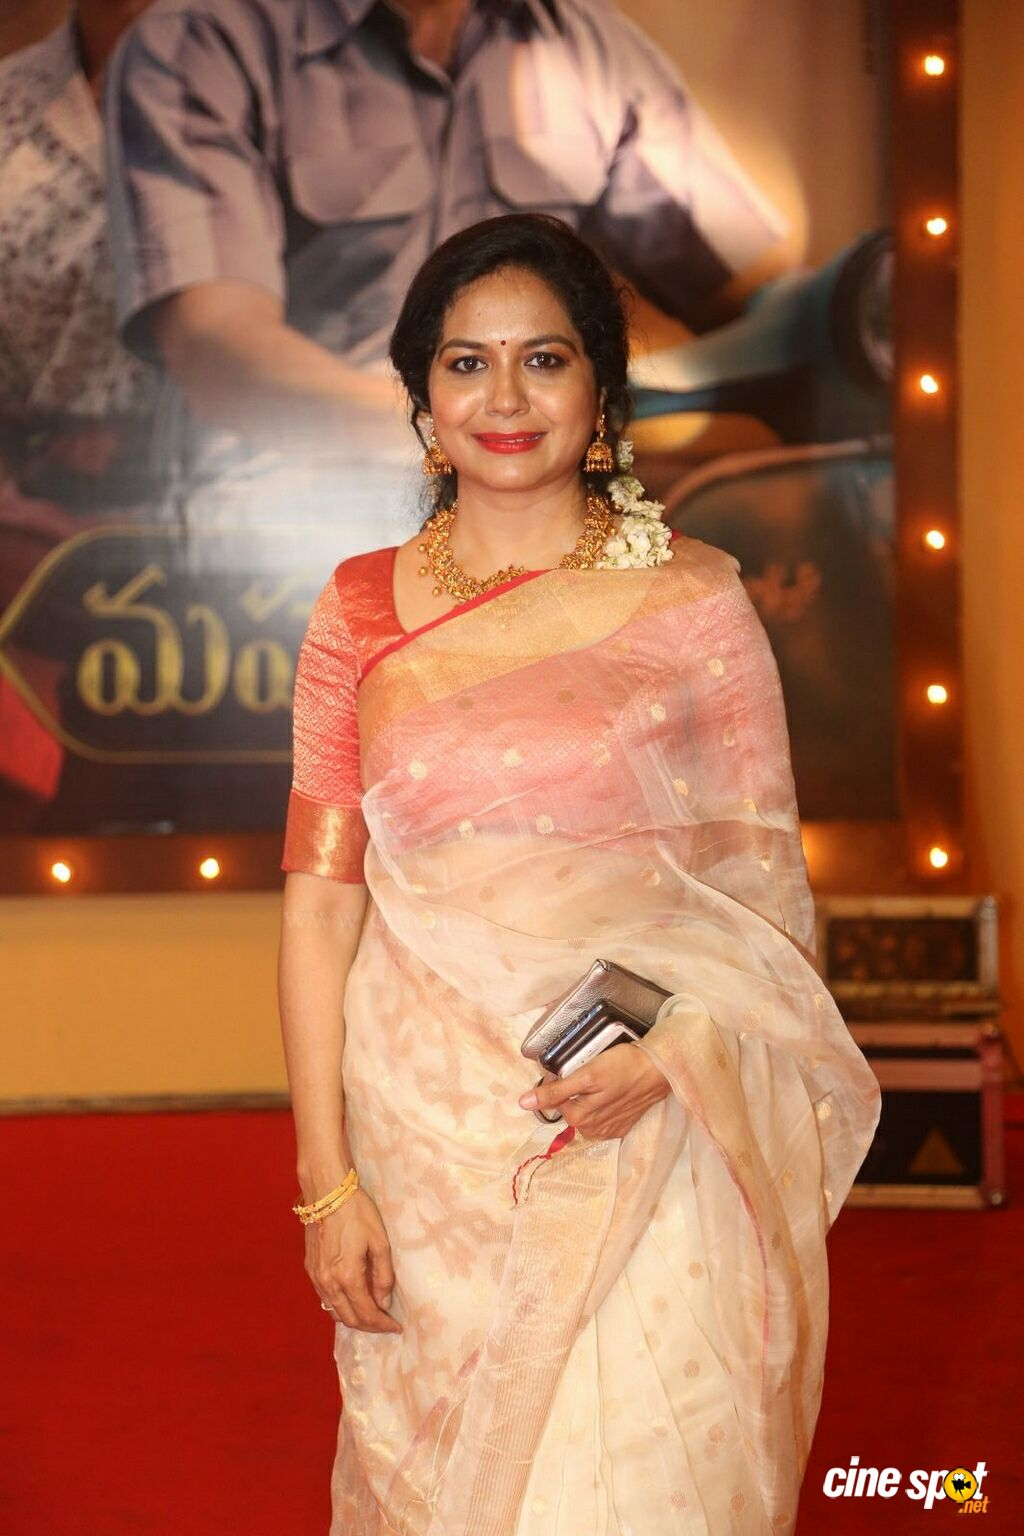 Sunitha Upadrashta at Mahanati Audio Launch (5)